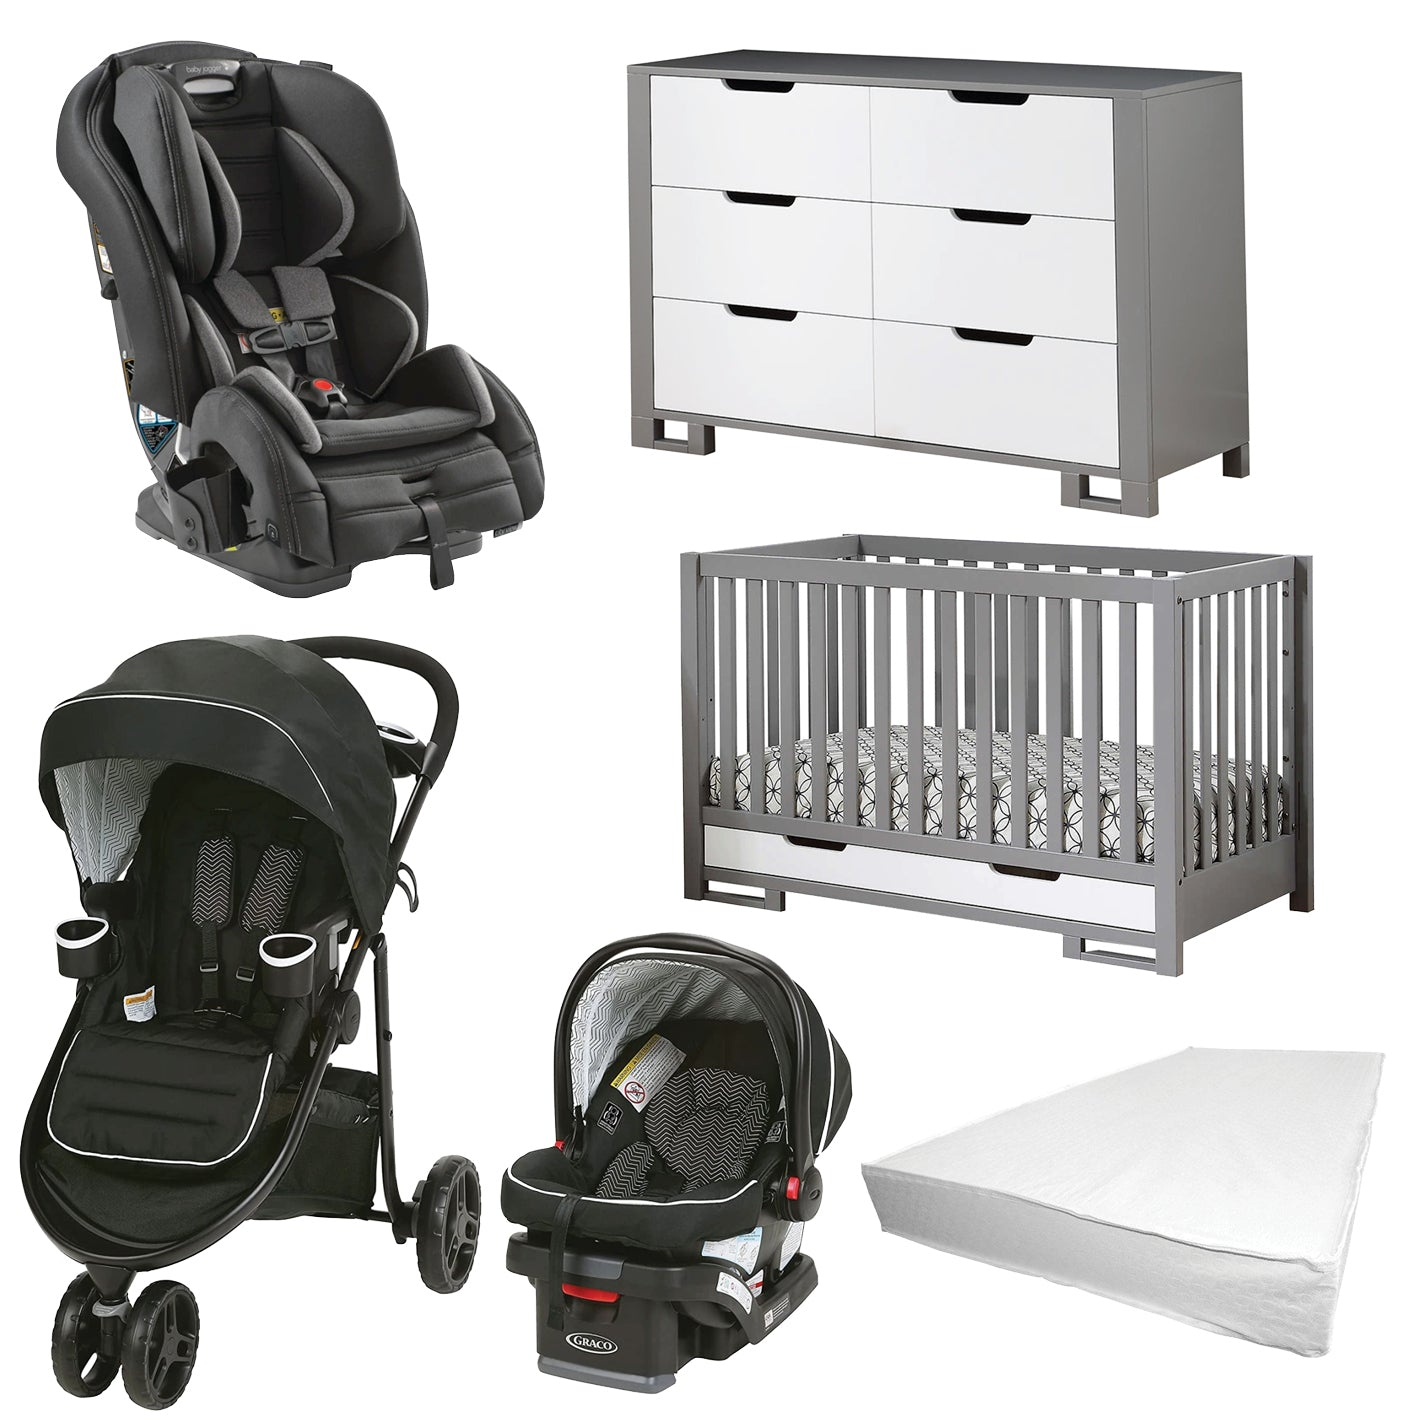 Starter Kit - Baby Jogger City View - 6 Pcs - Free Shipping